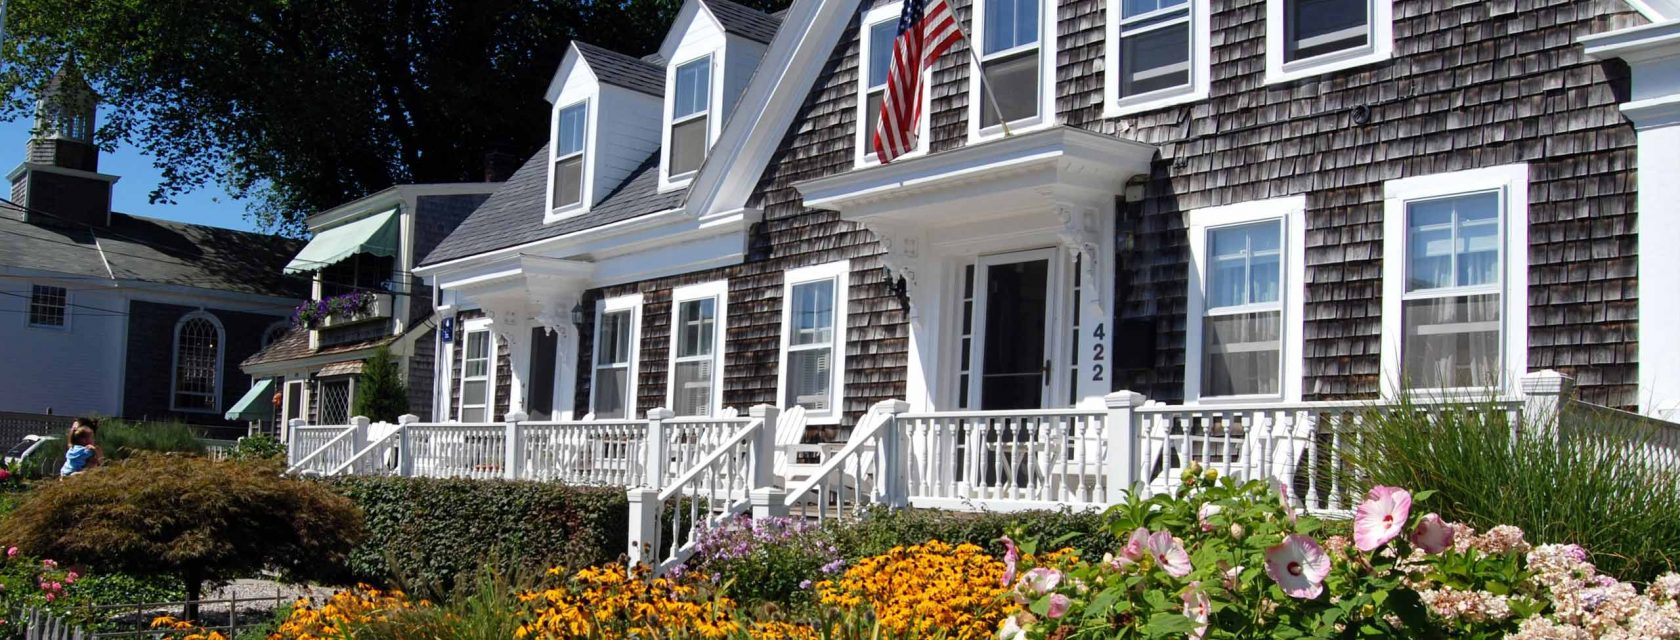 A typical Cape Cod colonial home in the heart of Provincetown MA